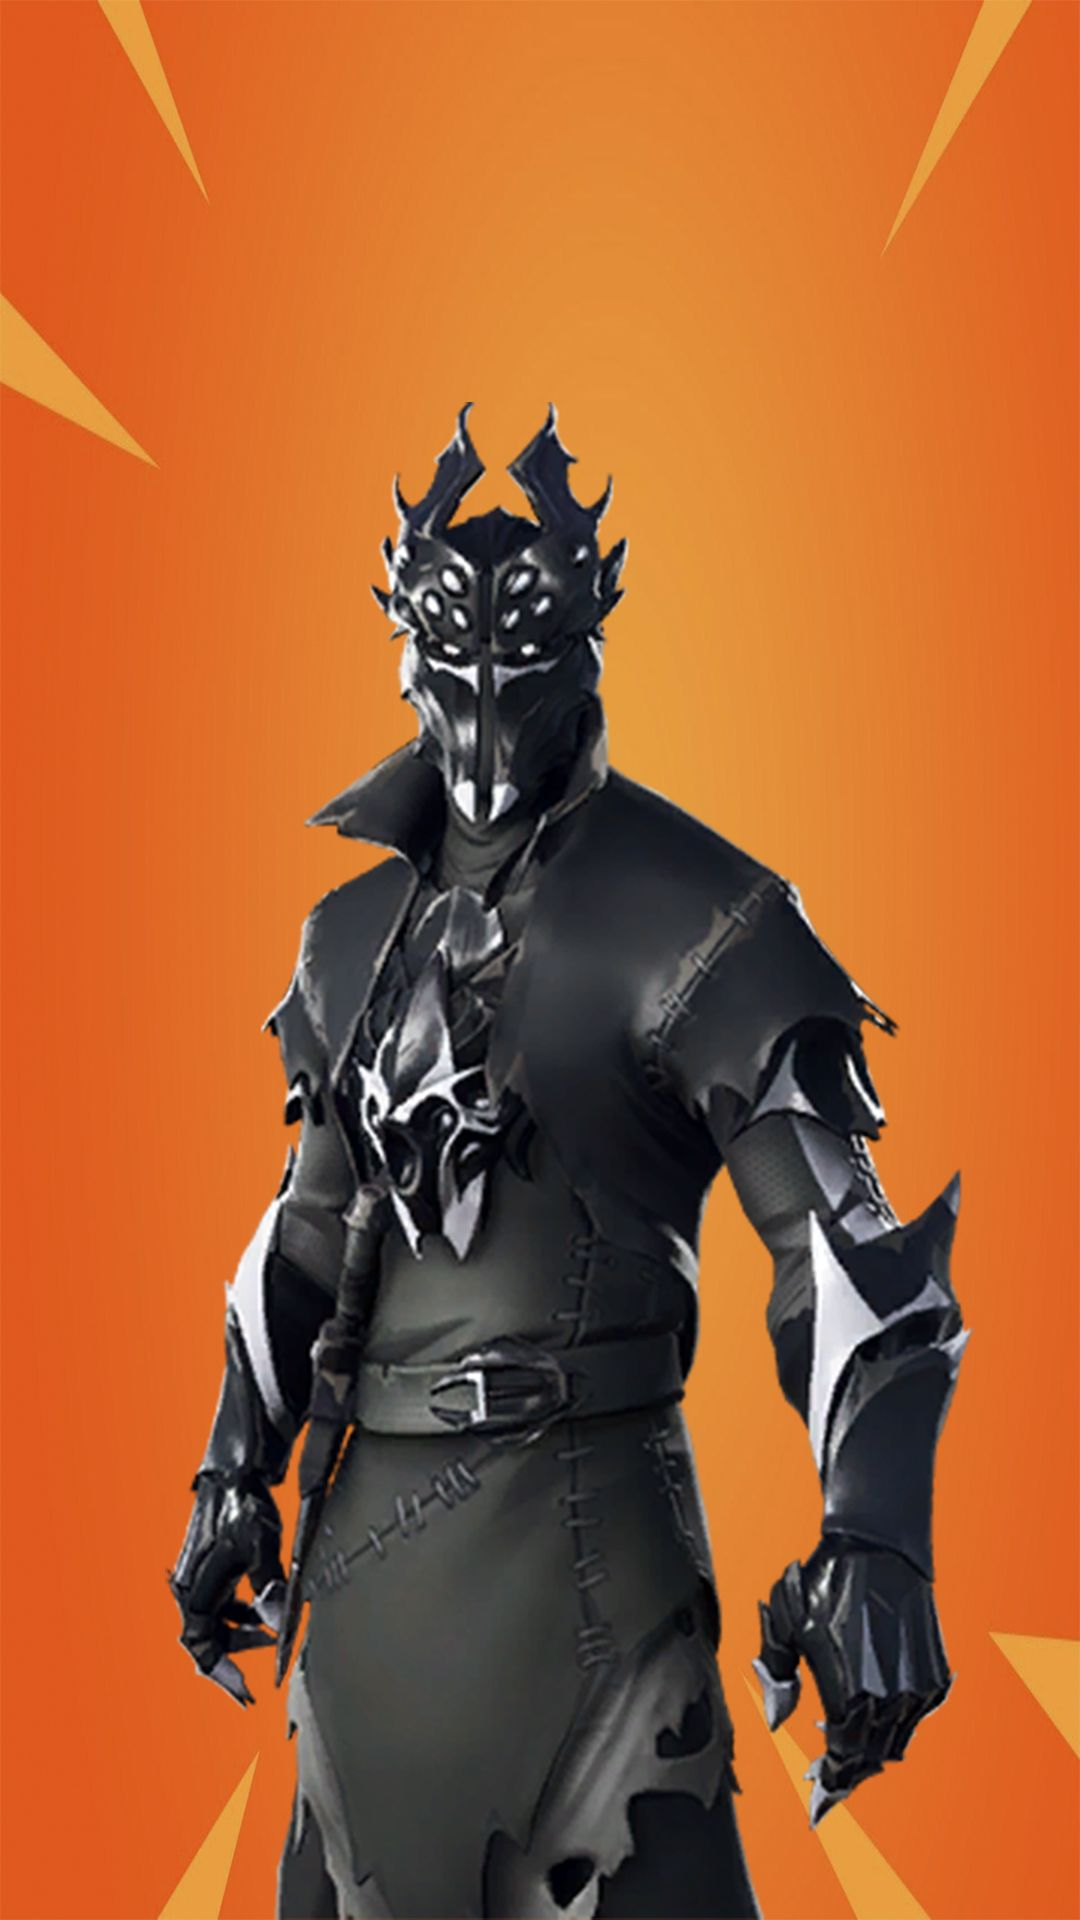 Black Rogue Spider Knight Fortnite